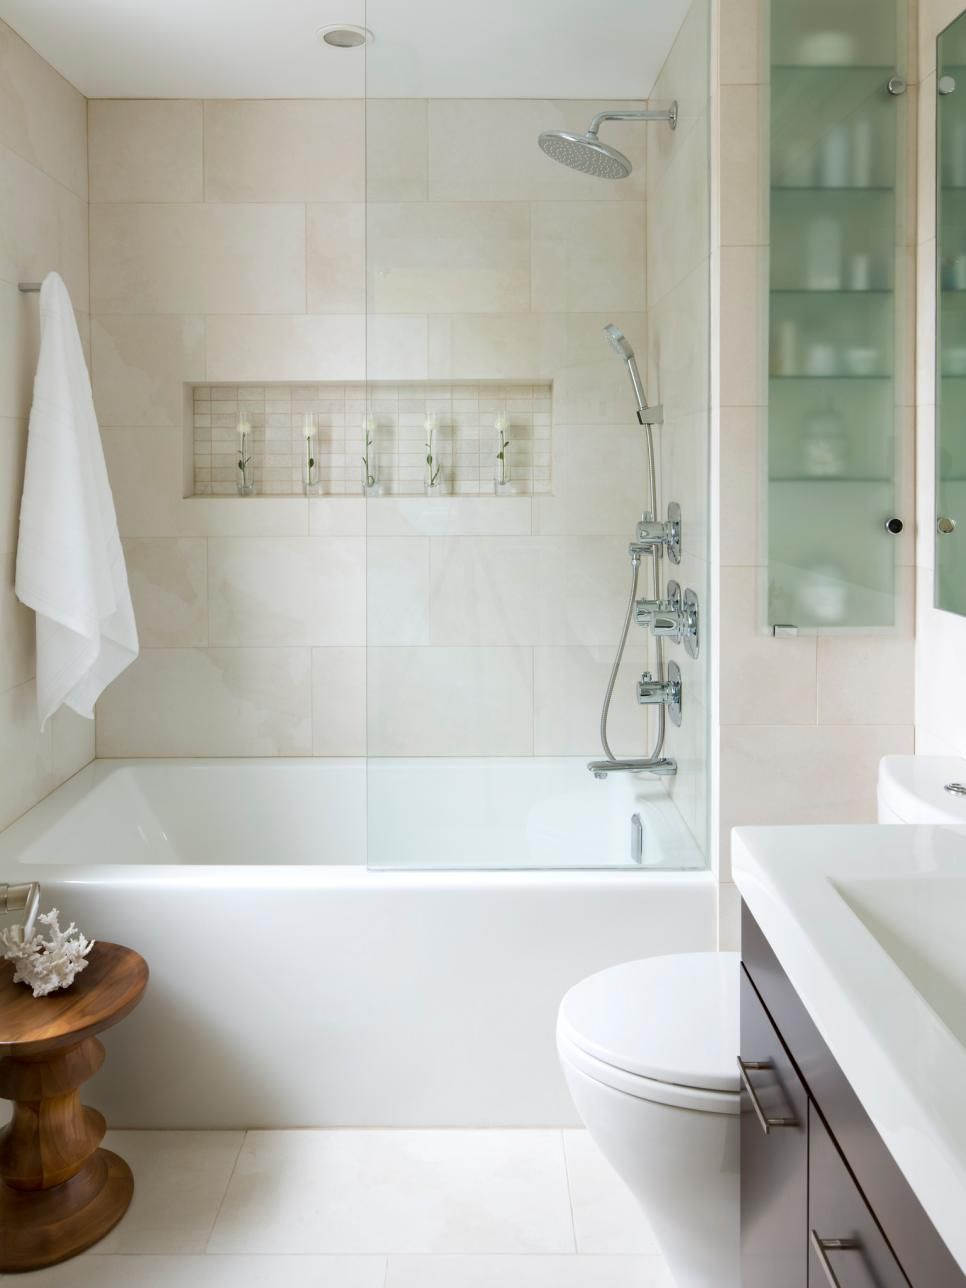 Dreaming Of A Master Bath With Amenities On Par With Those At Your Favorite Spa These 15 Bathing Beaut Badezimmer Umbau Kleine Badezimmer Badewanne Mit Dusche